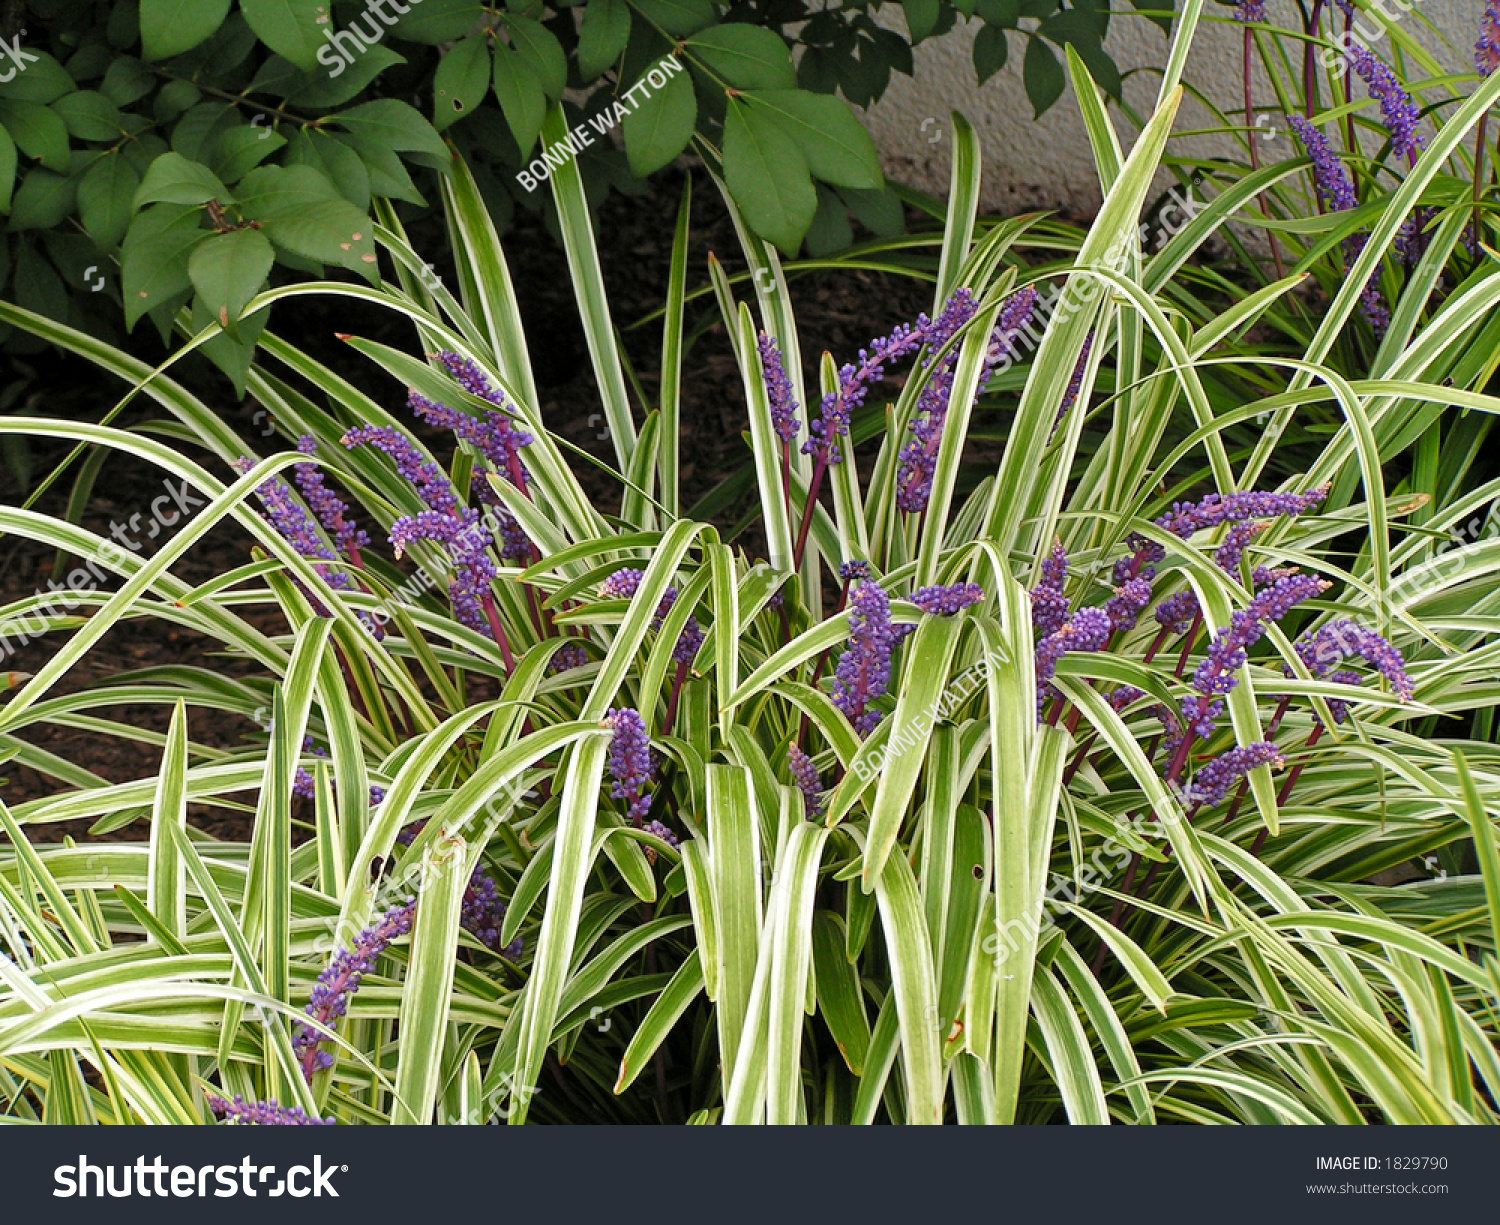 Liriope grass like perennial variegated foliage stock for Variegated grass plant